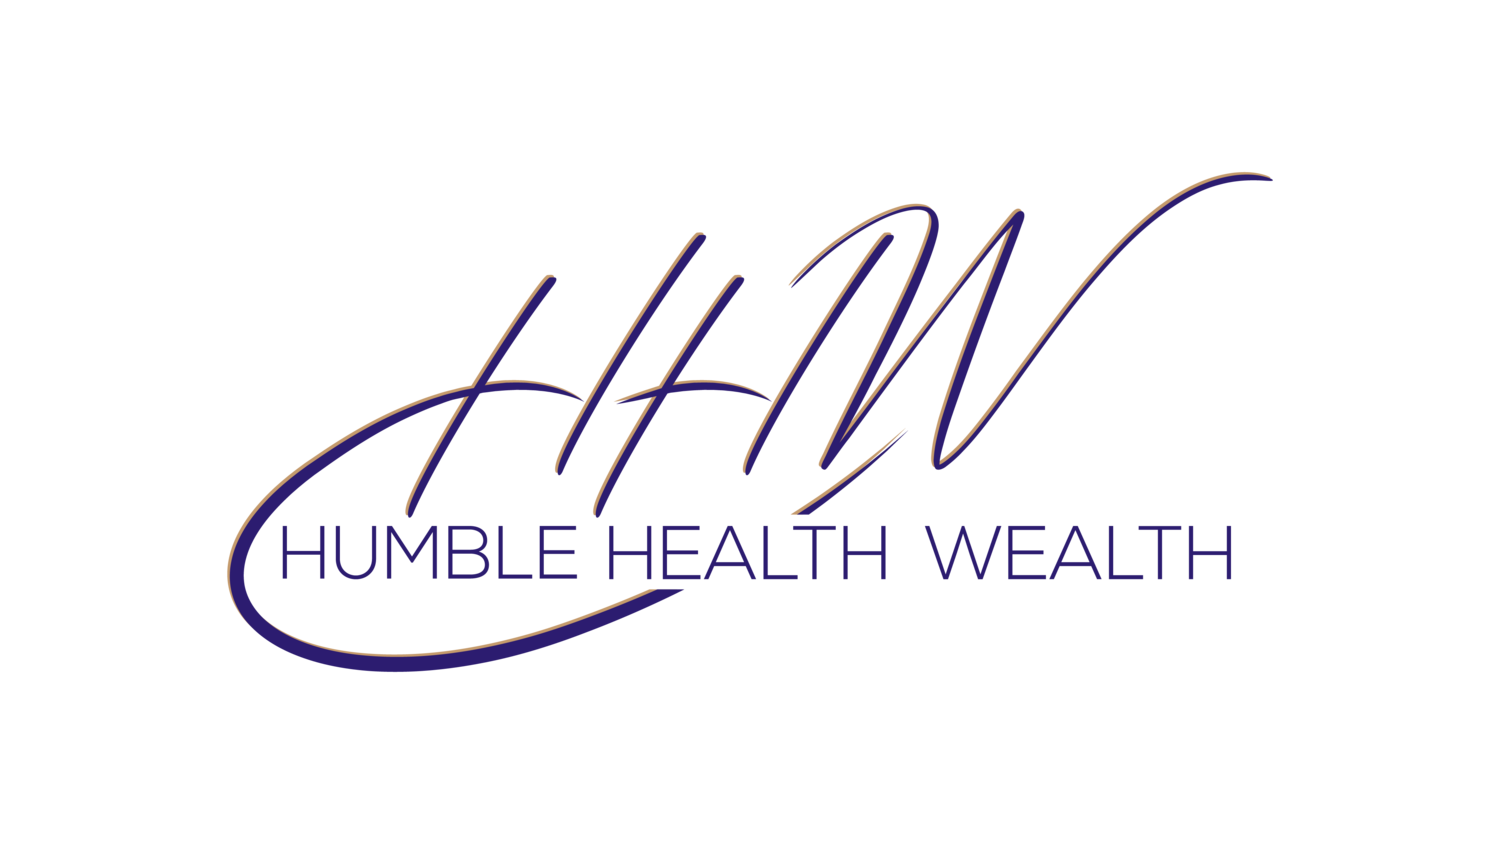 Humble Health Wealth